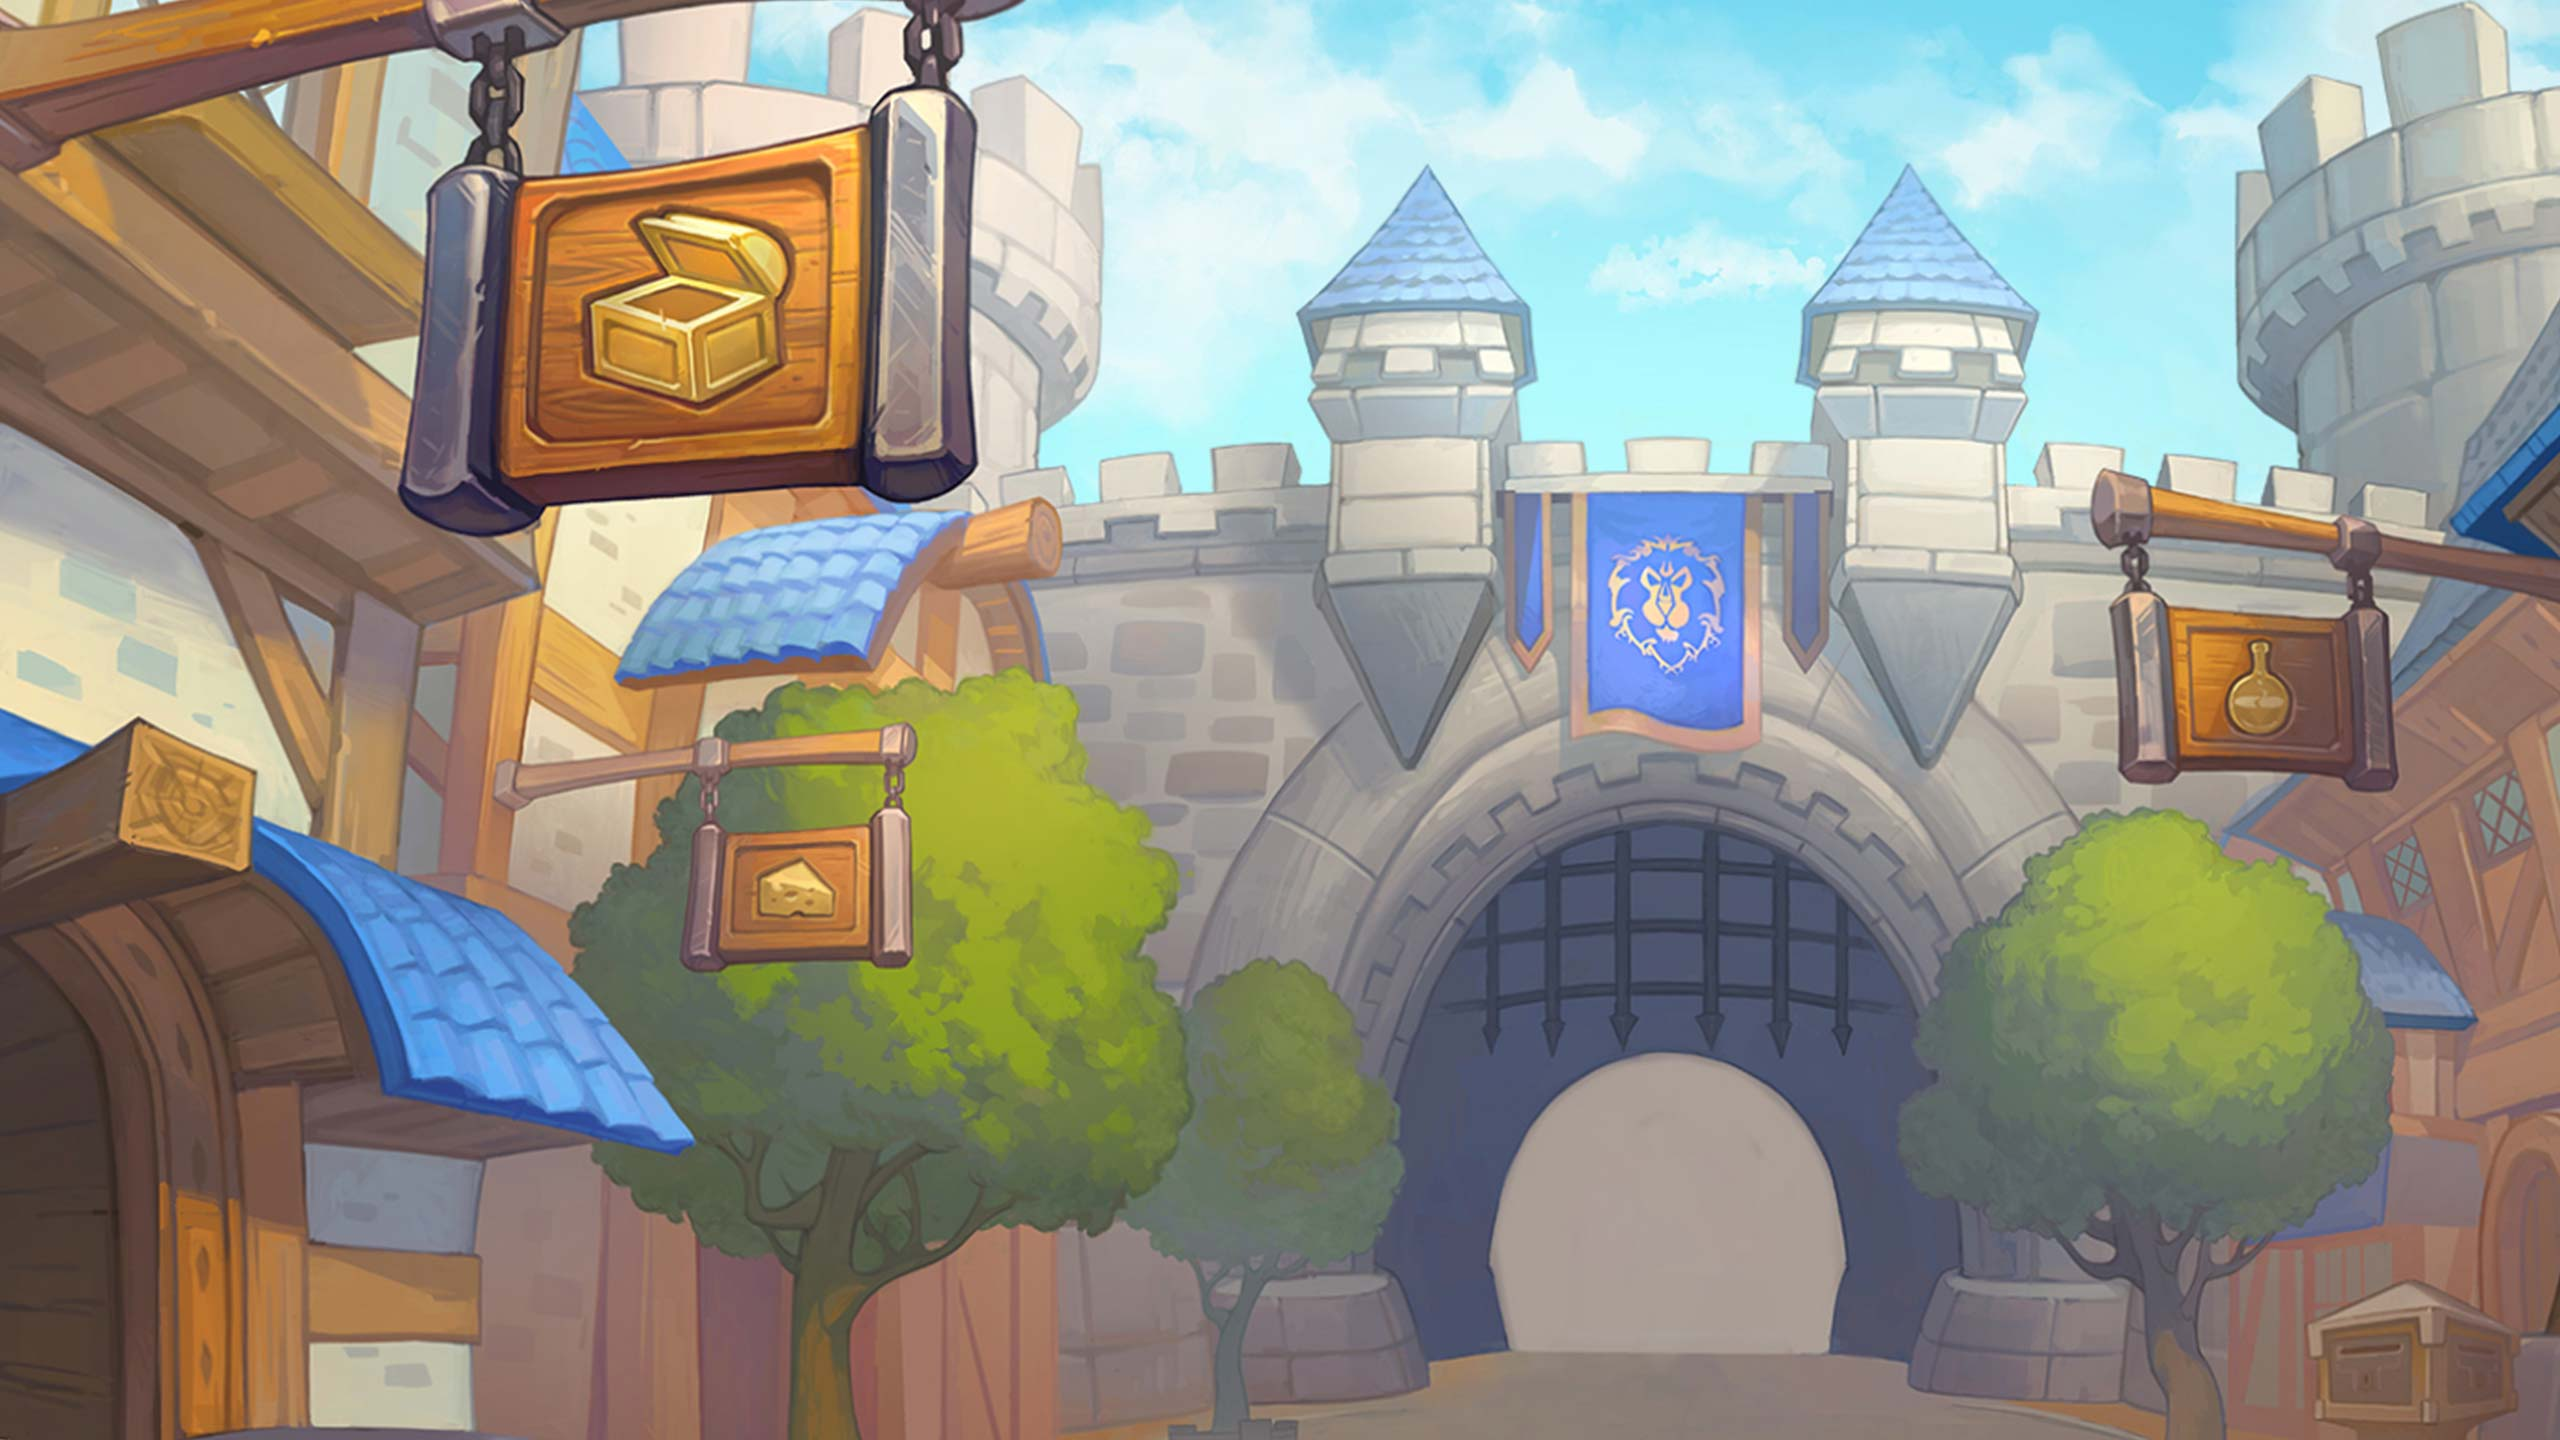 A Roundup of News Related to Hearthstone's United in Stormwind Expansion and Upcoming Content